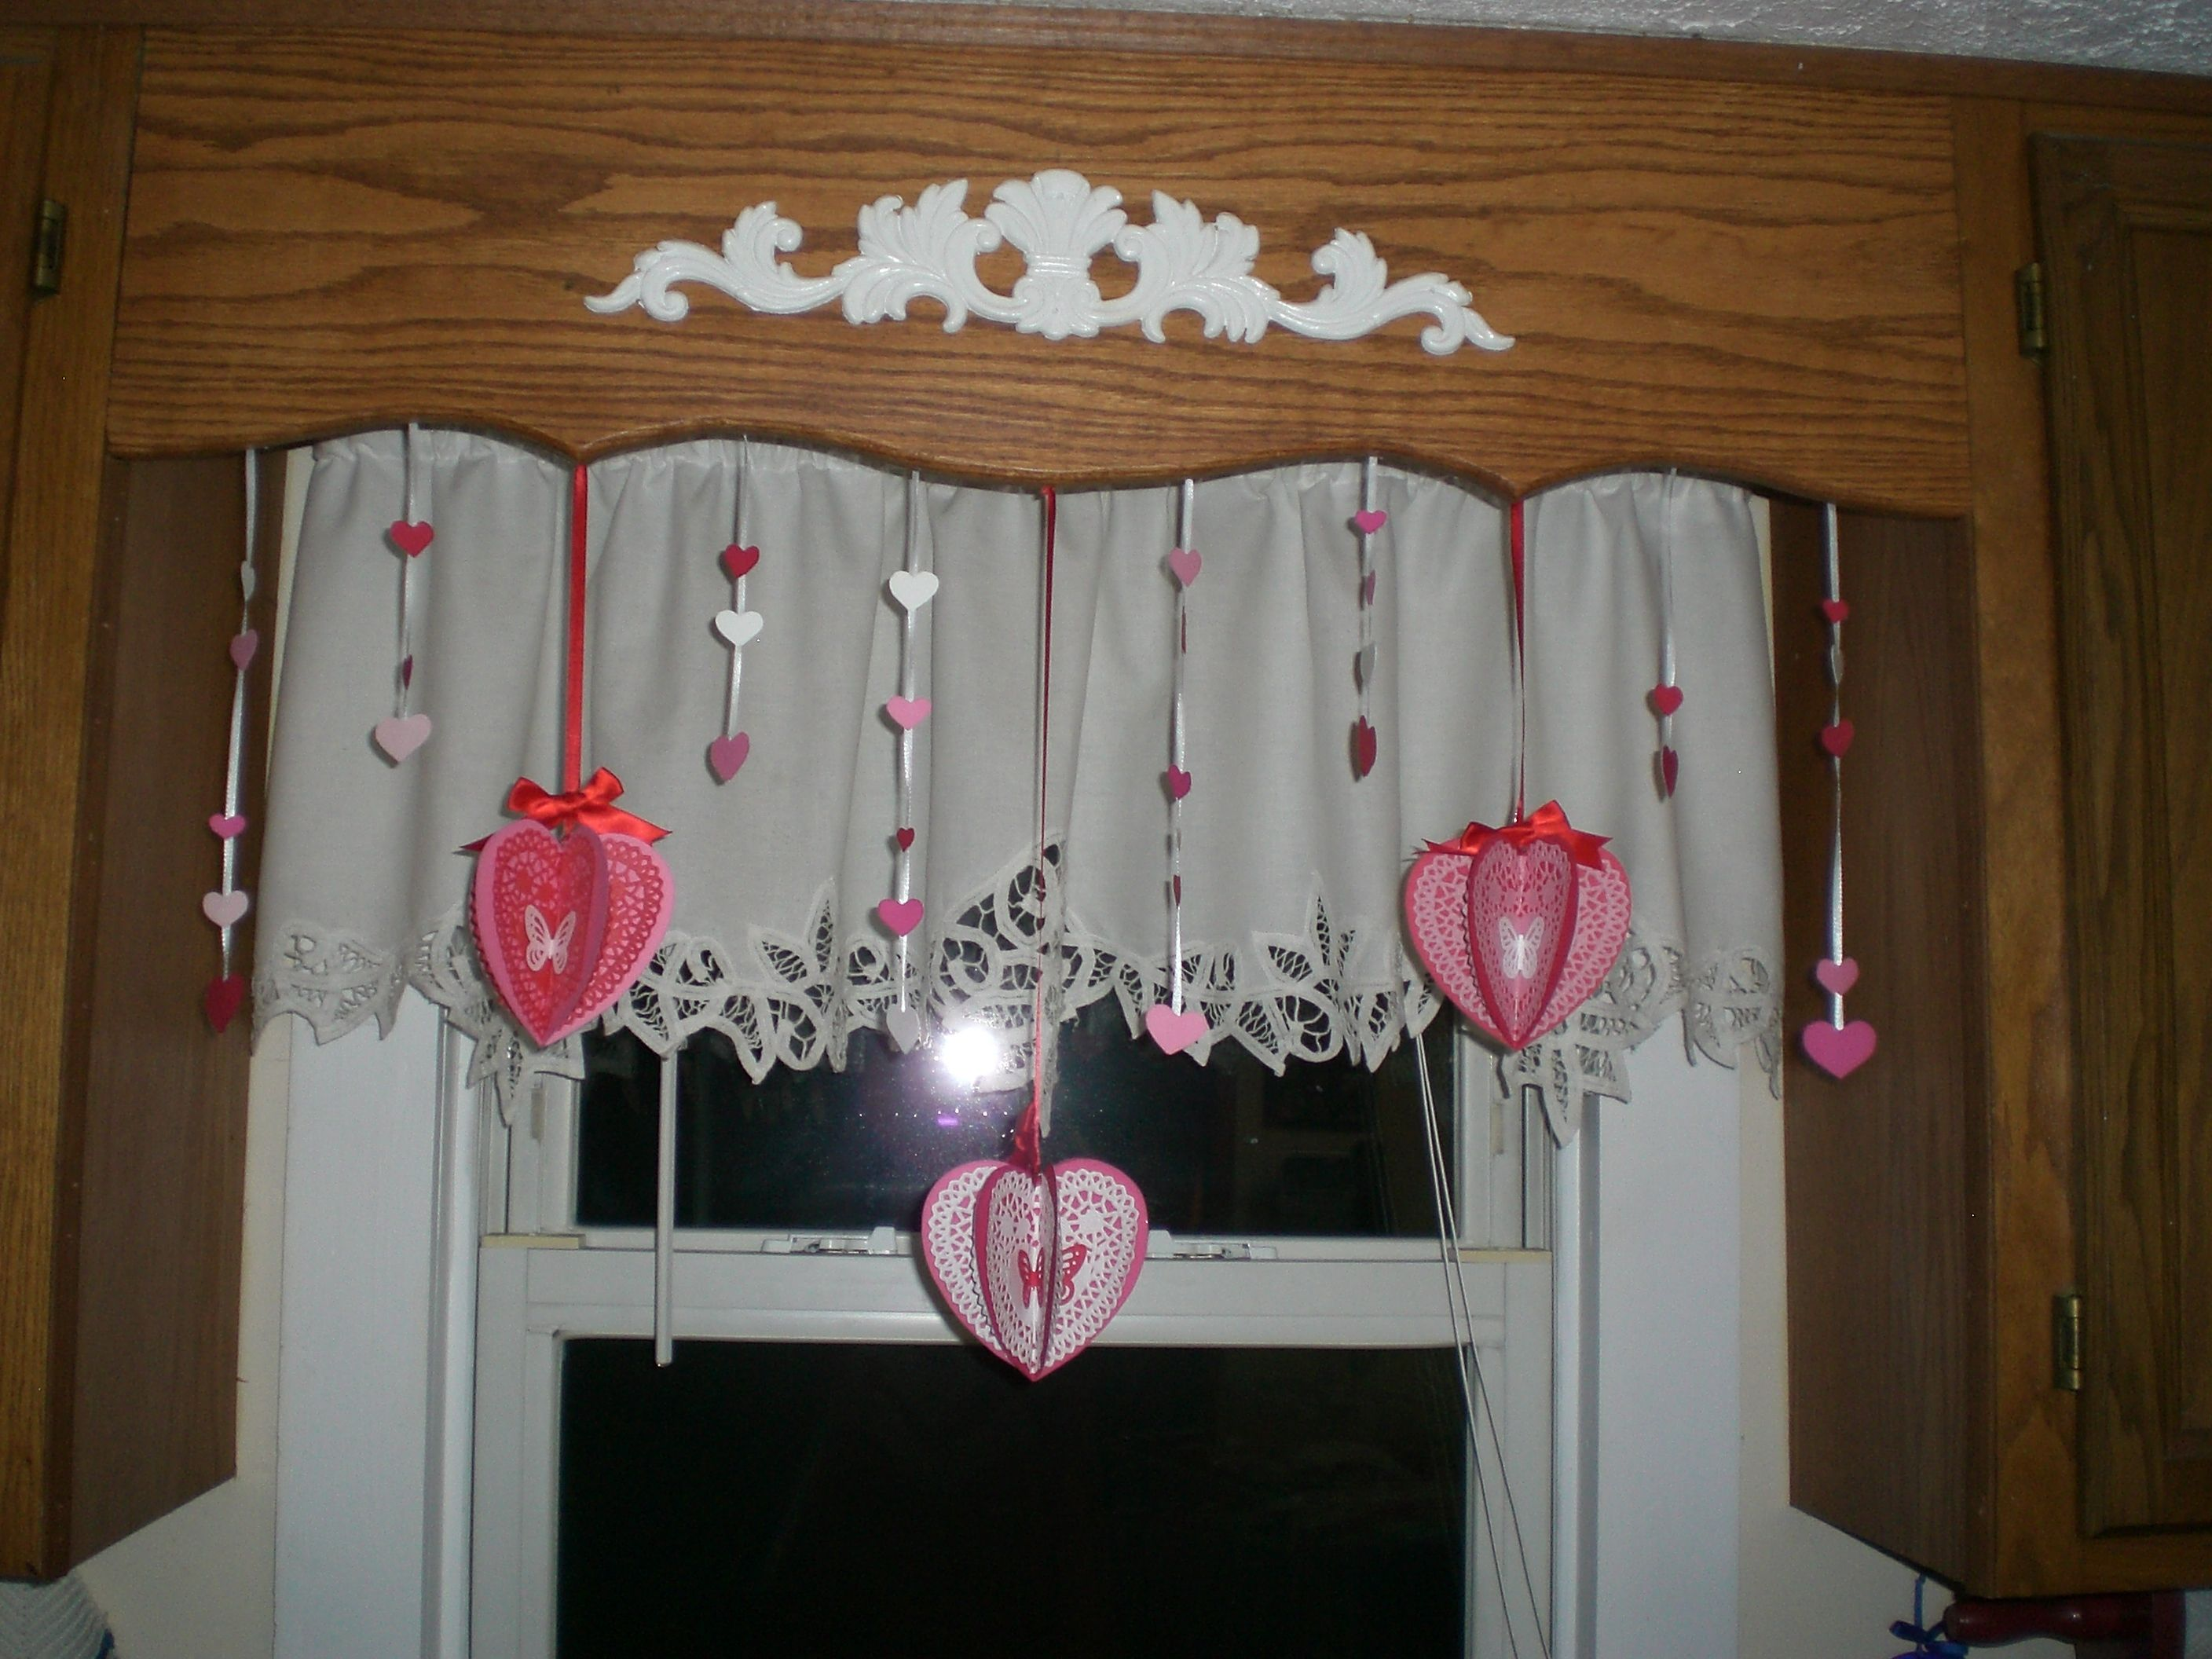 Window treatment ideas for above kitchen sink  decorations i made for above my kitchen sink  valentine favors